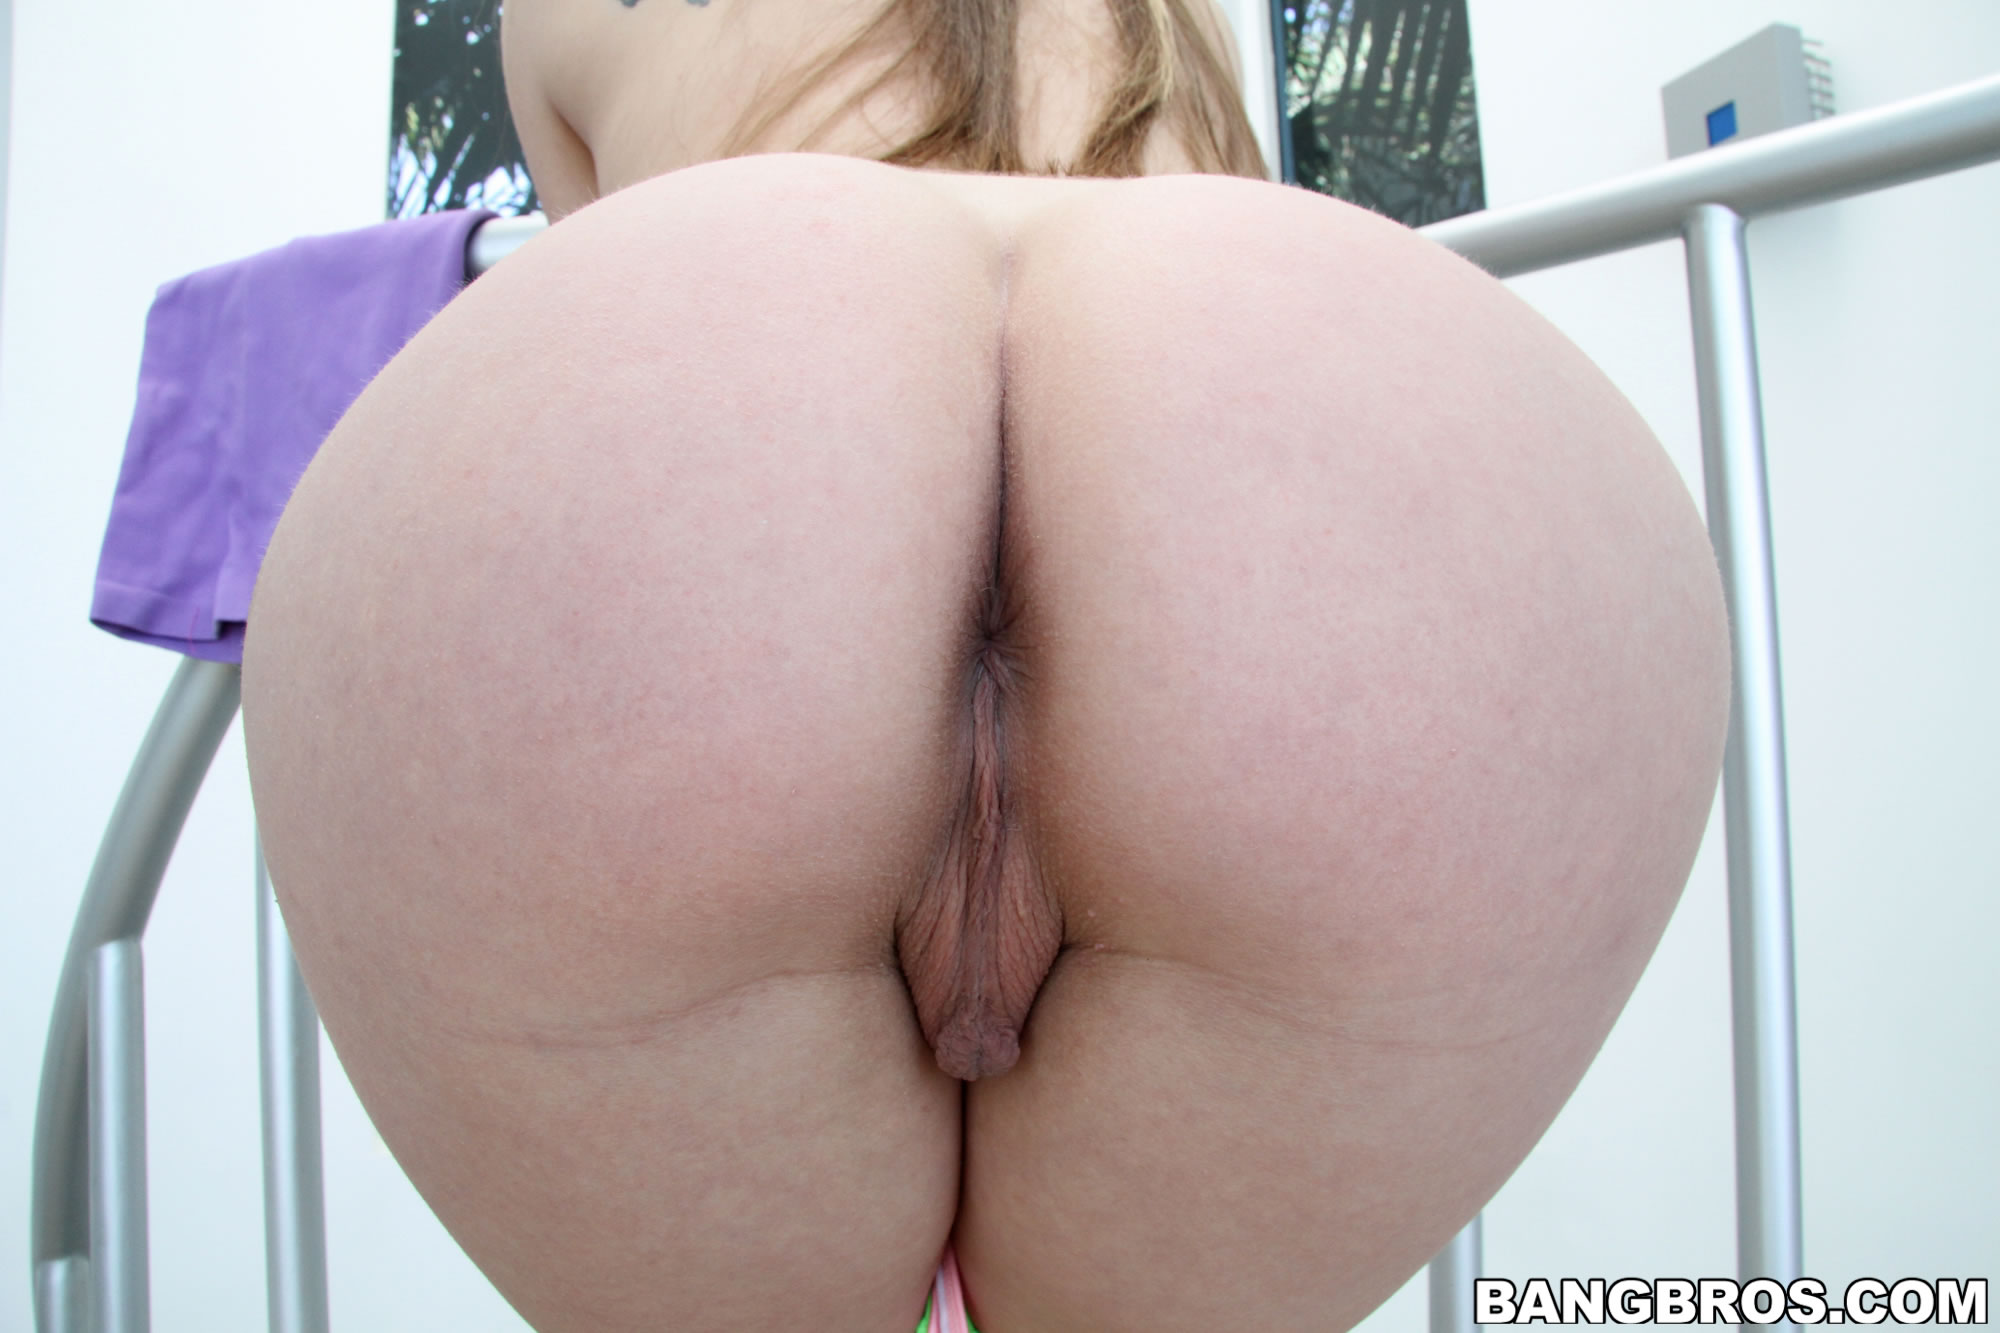 Jamie love phat ass bbw